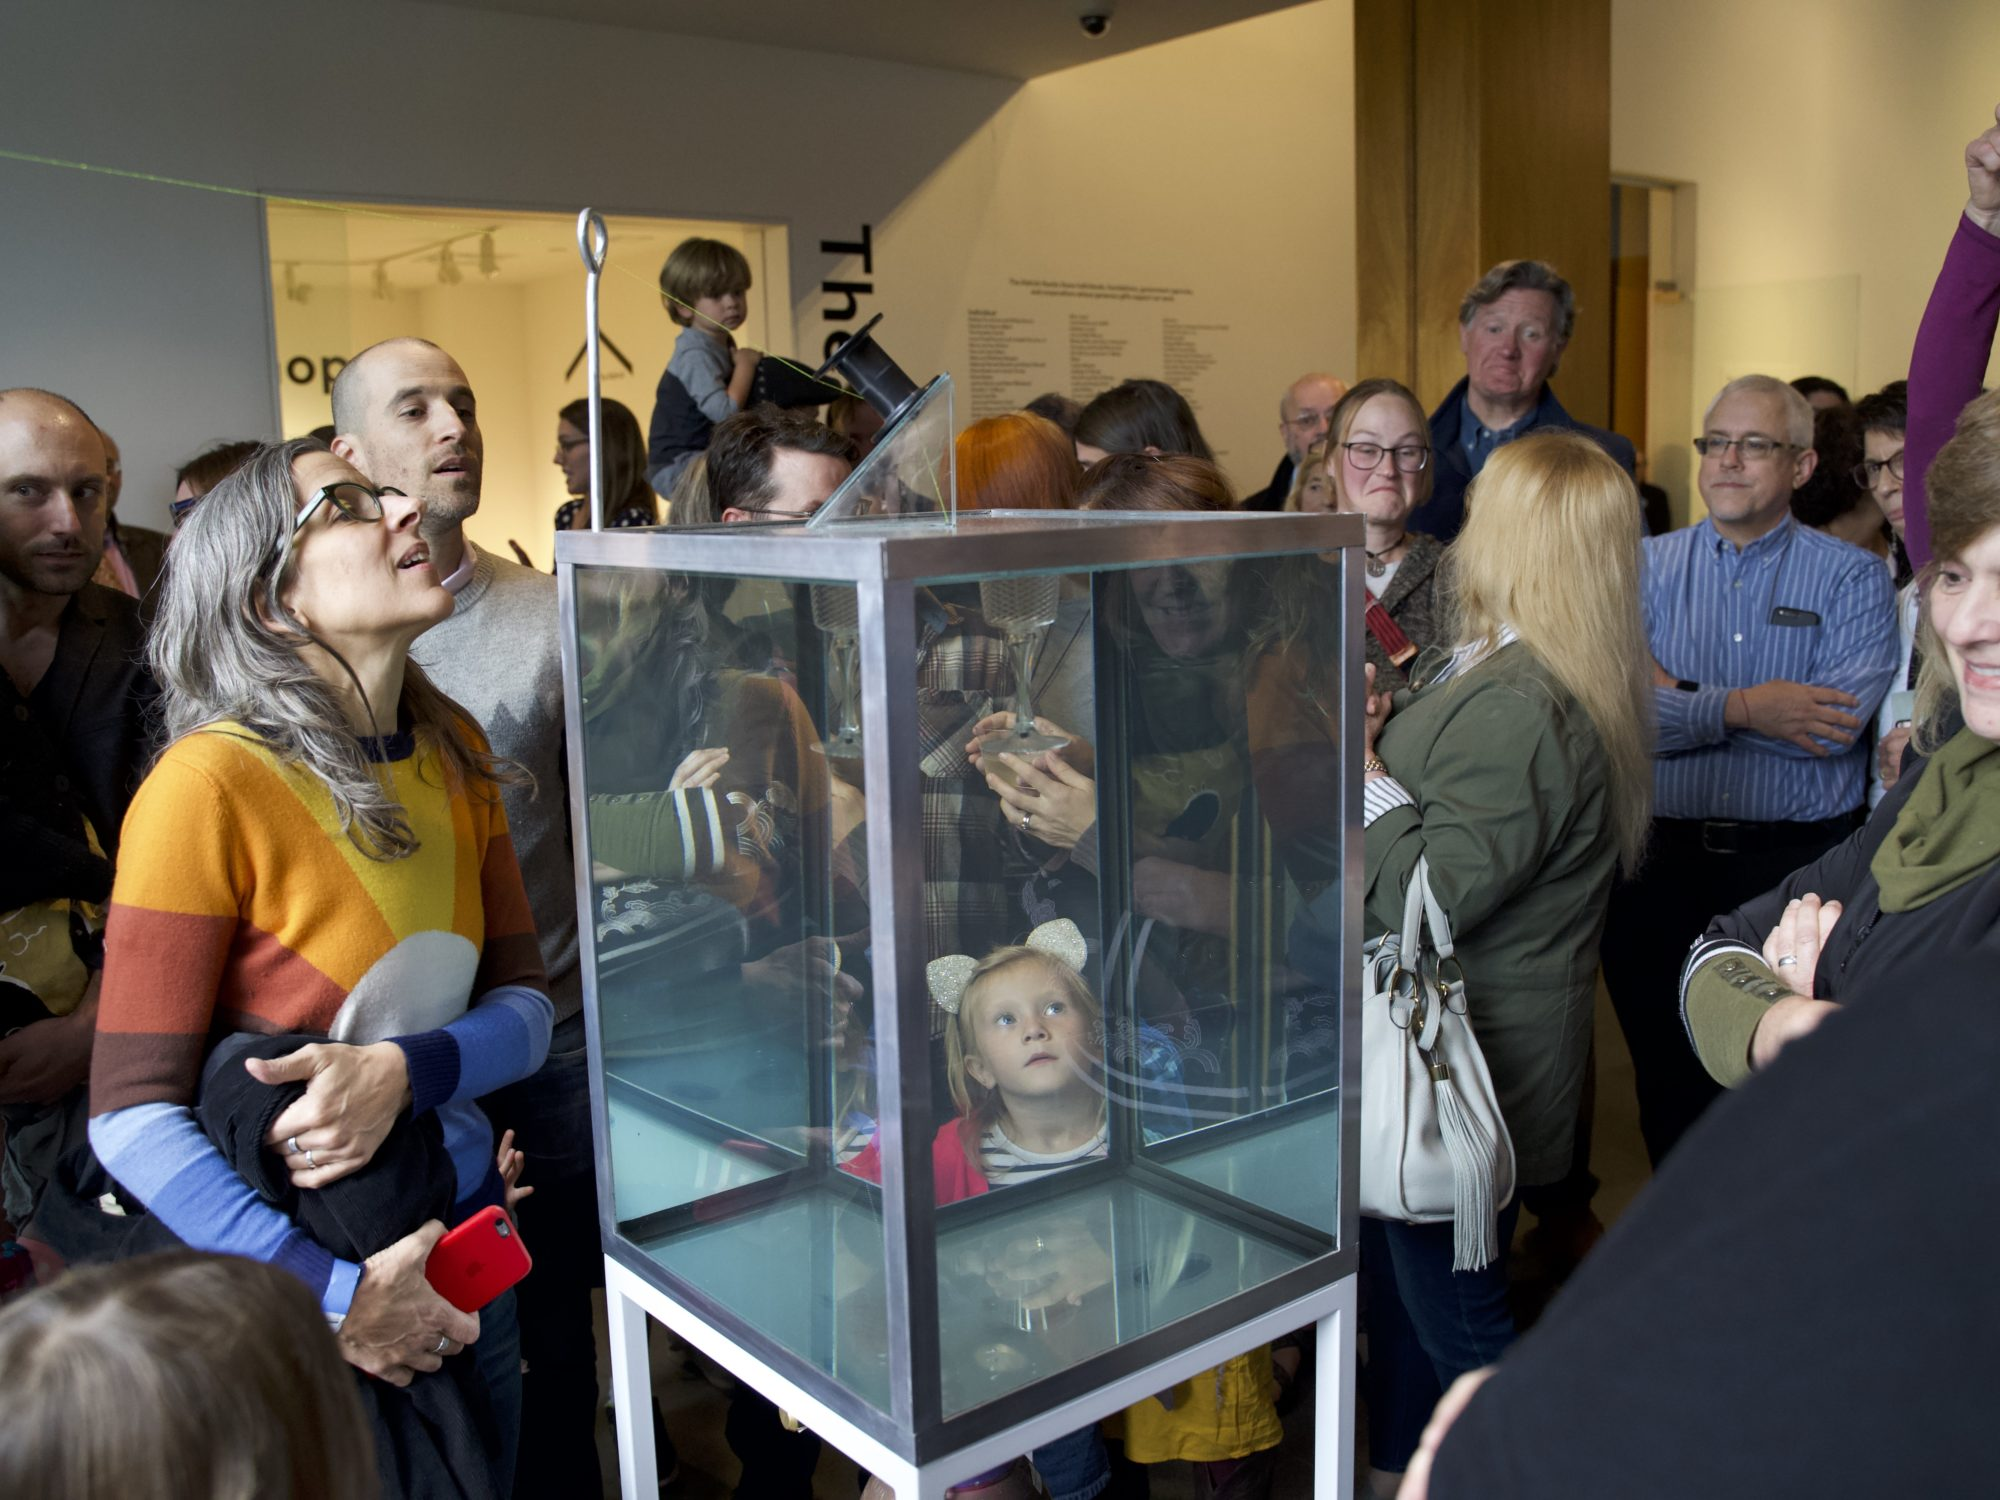 Visitors watching a performance of Sean Salstrom's Indefinity Box.